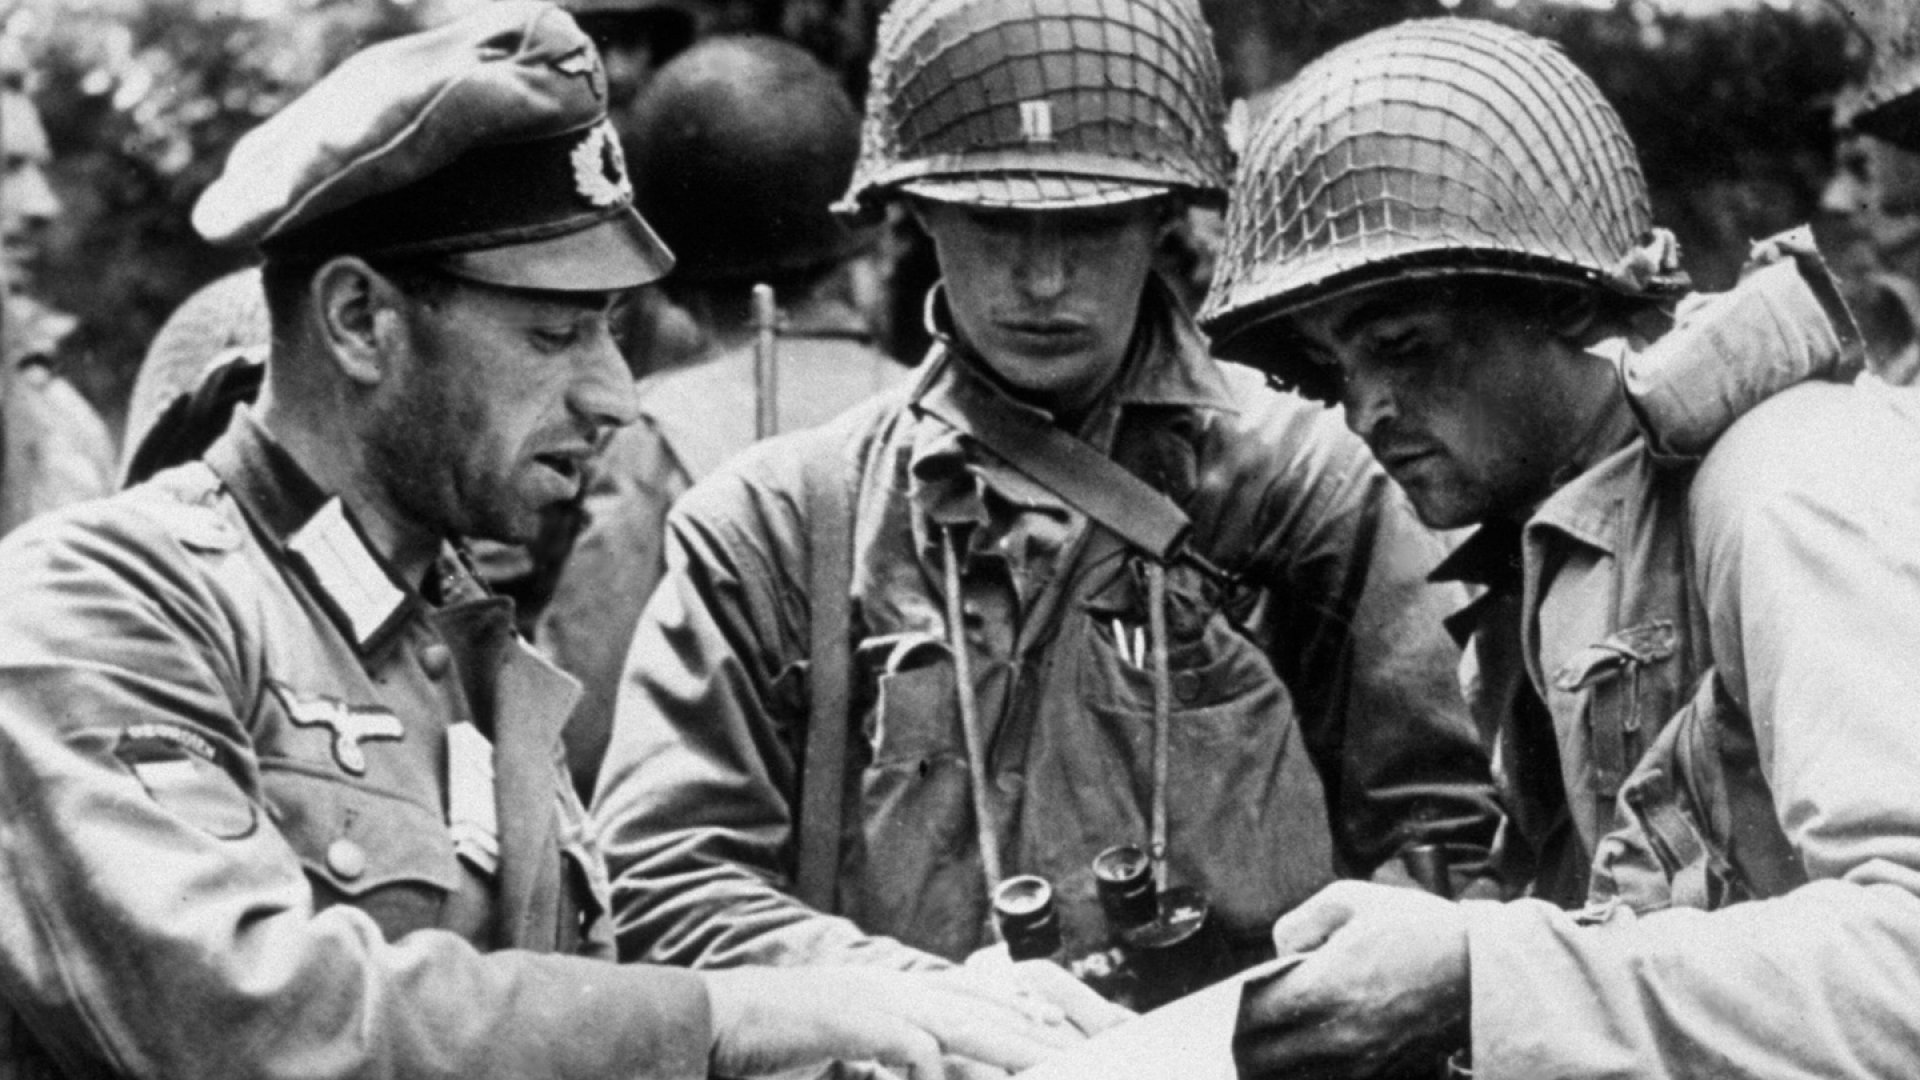 A German officer explains details of a military map captured with him, to members of the Allied Expeditionary Force.